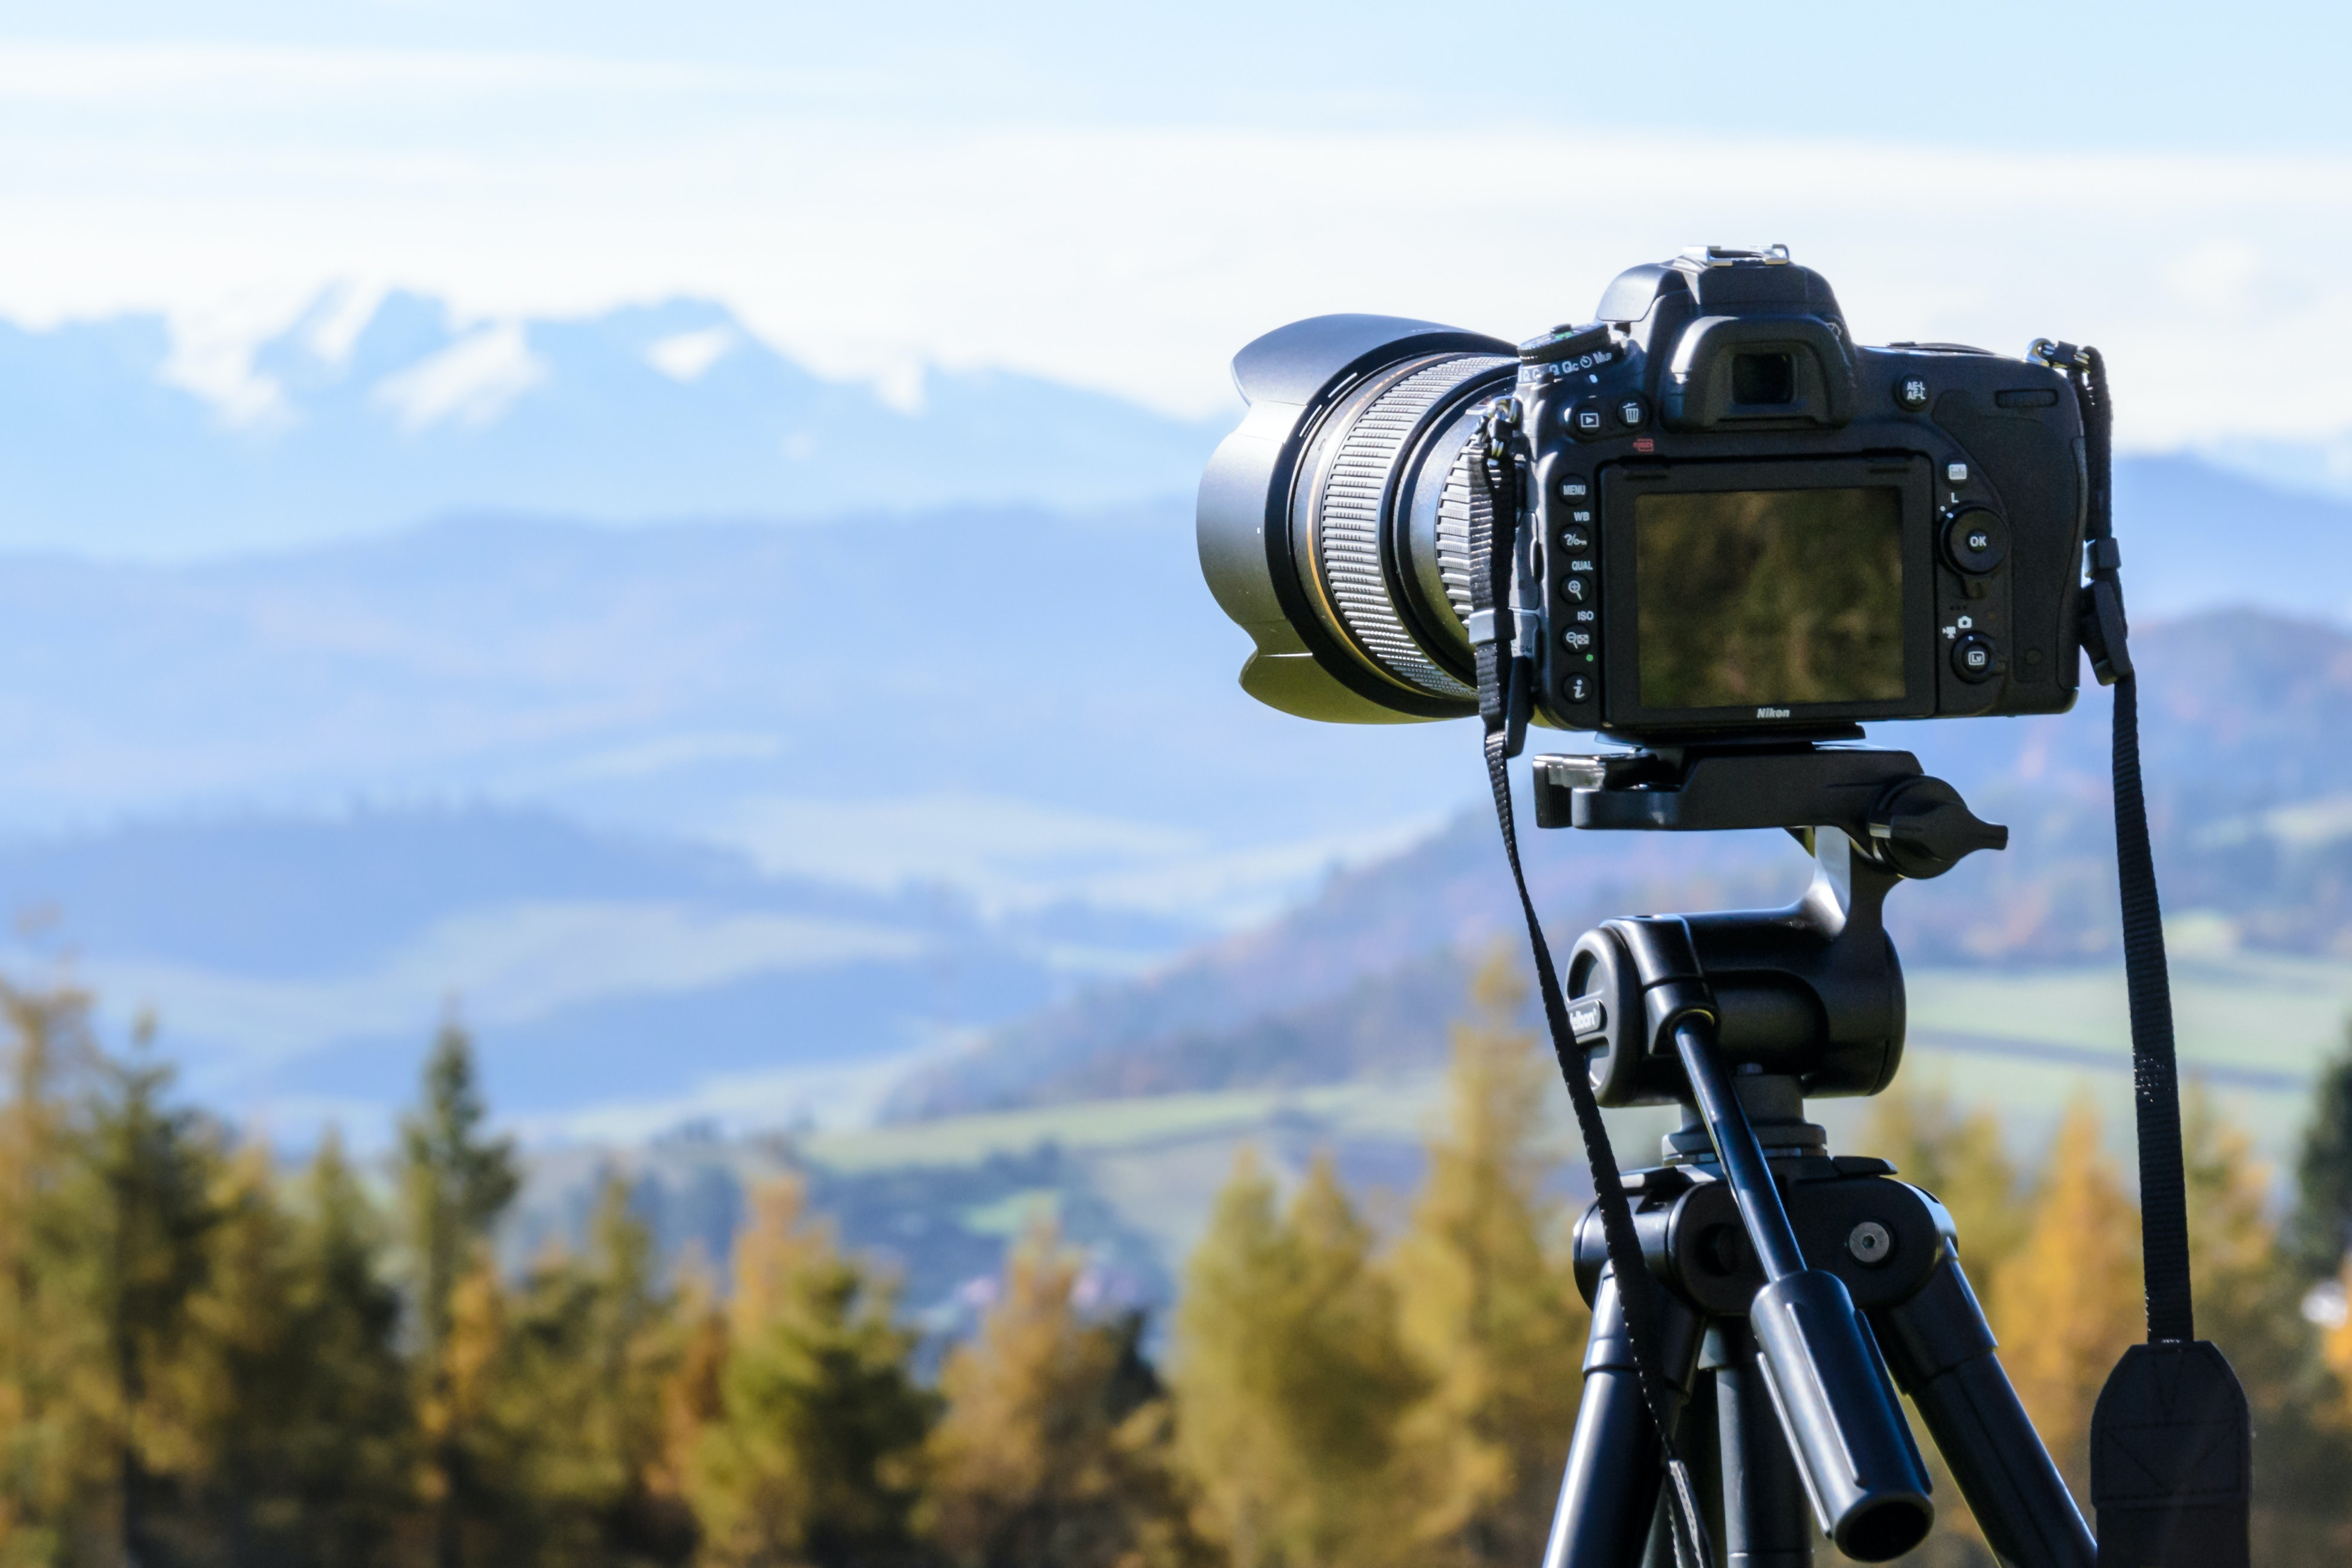 DSLR camera pointed towards landscape